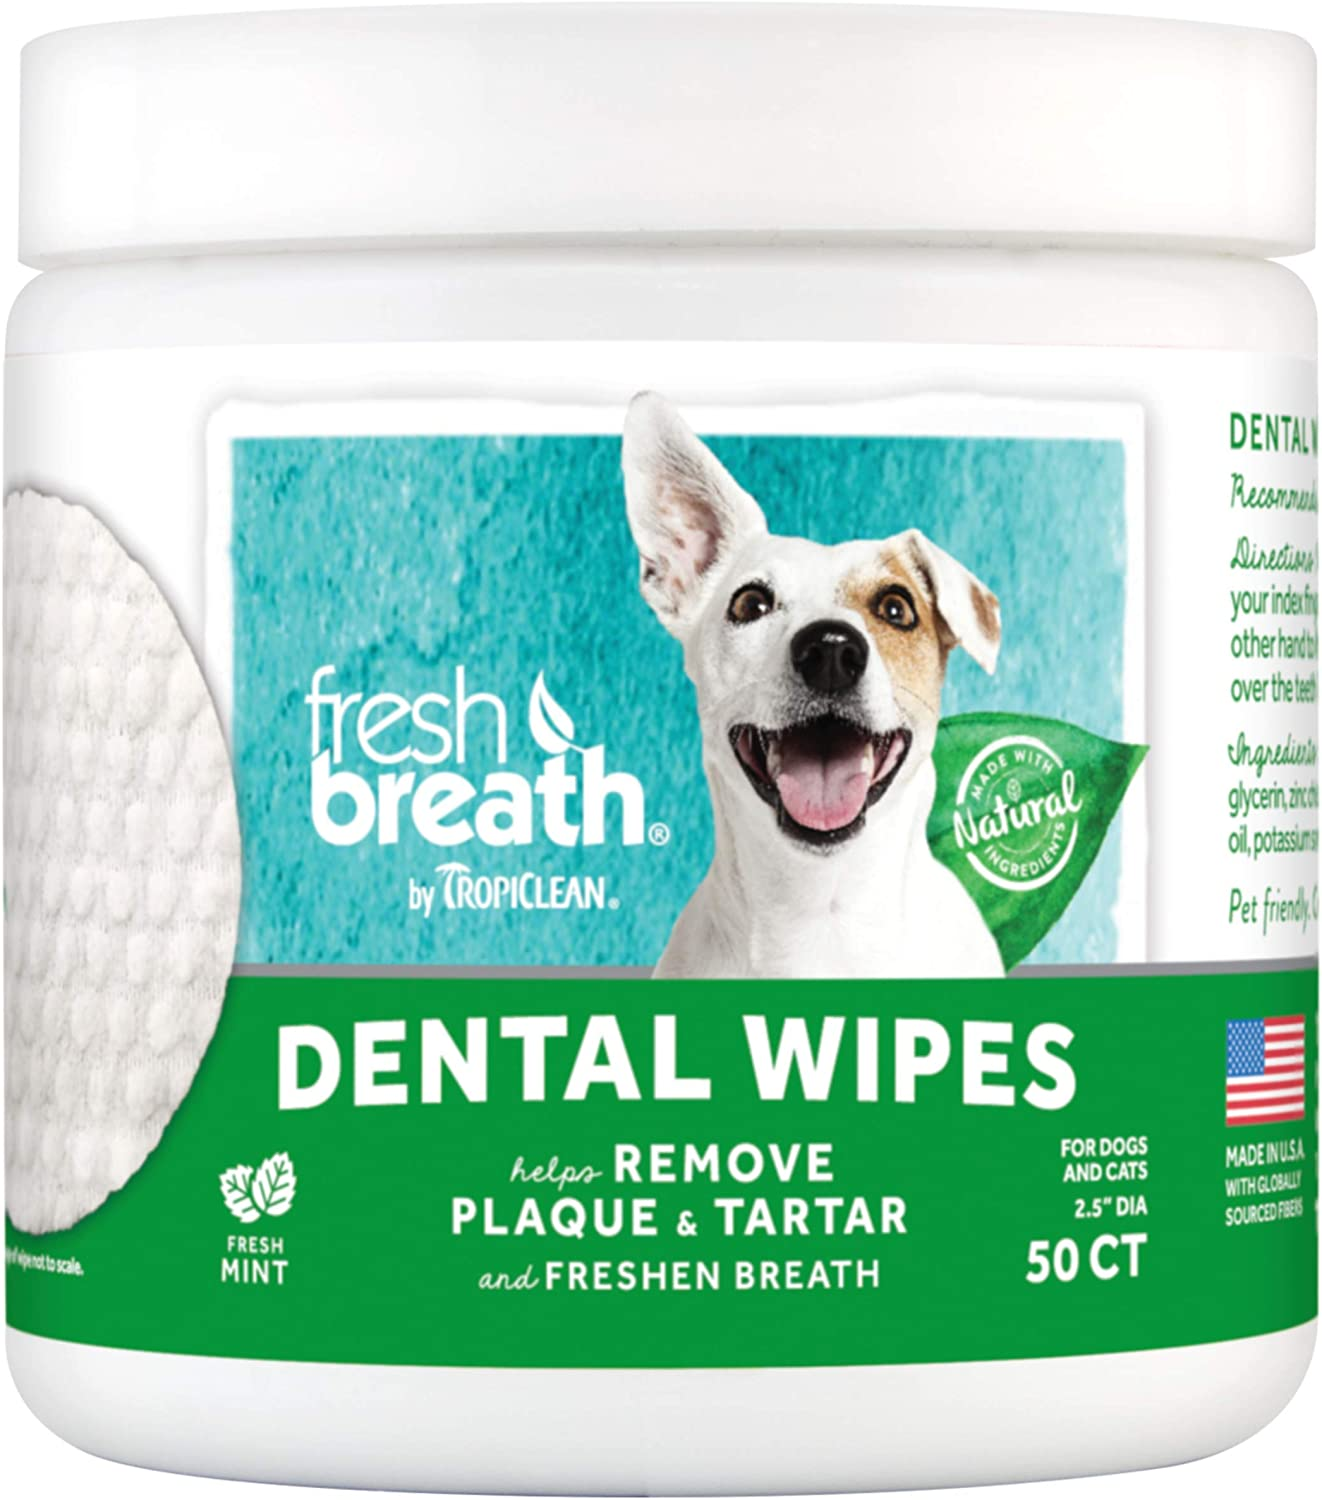 Fresh Breath by TropiClean No Brushing Clean Teeth Dental & Oral Care Dental Wipes for Pets, 50ct : Pet Supplies